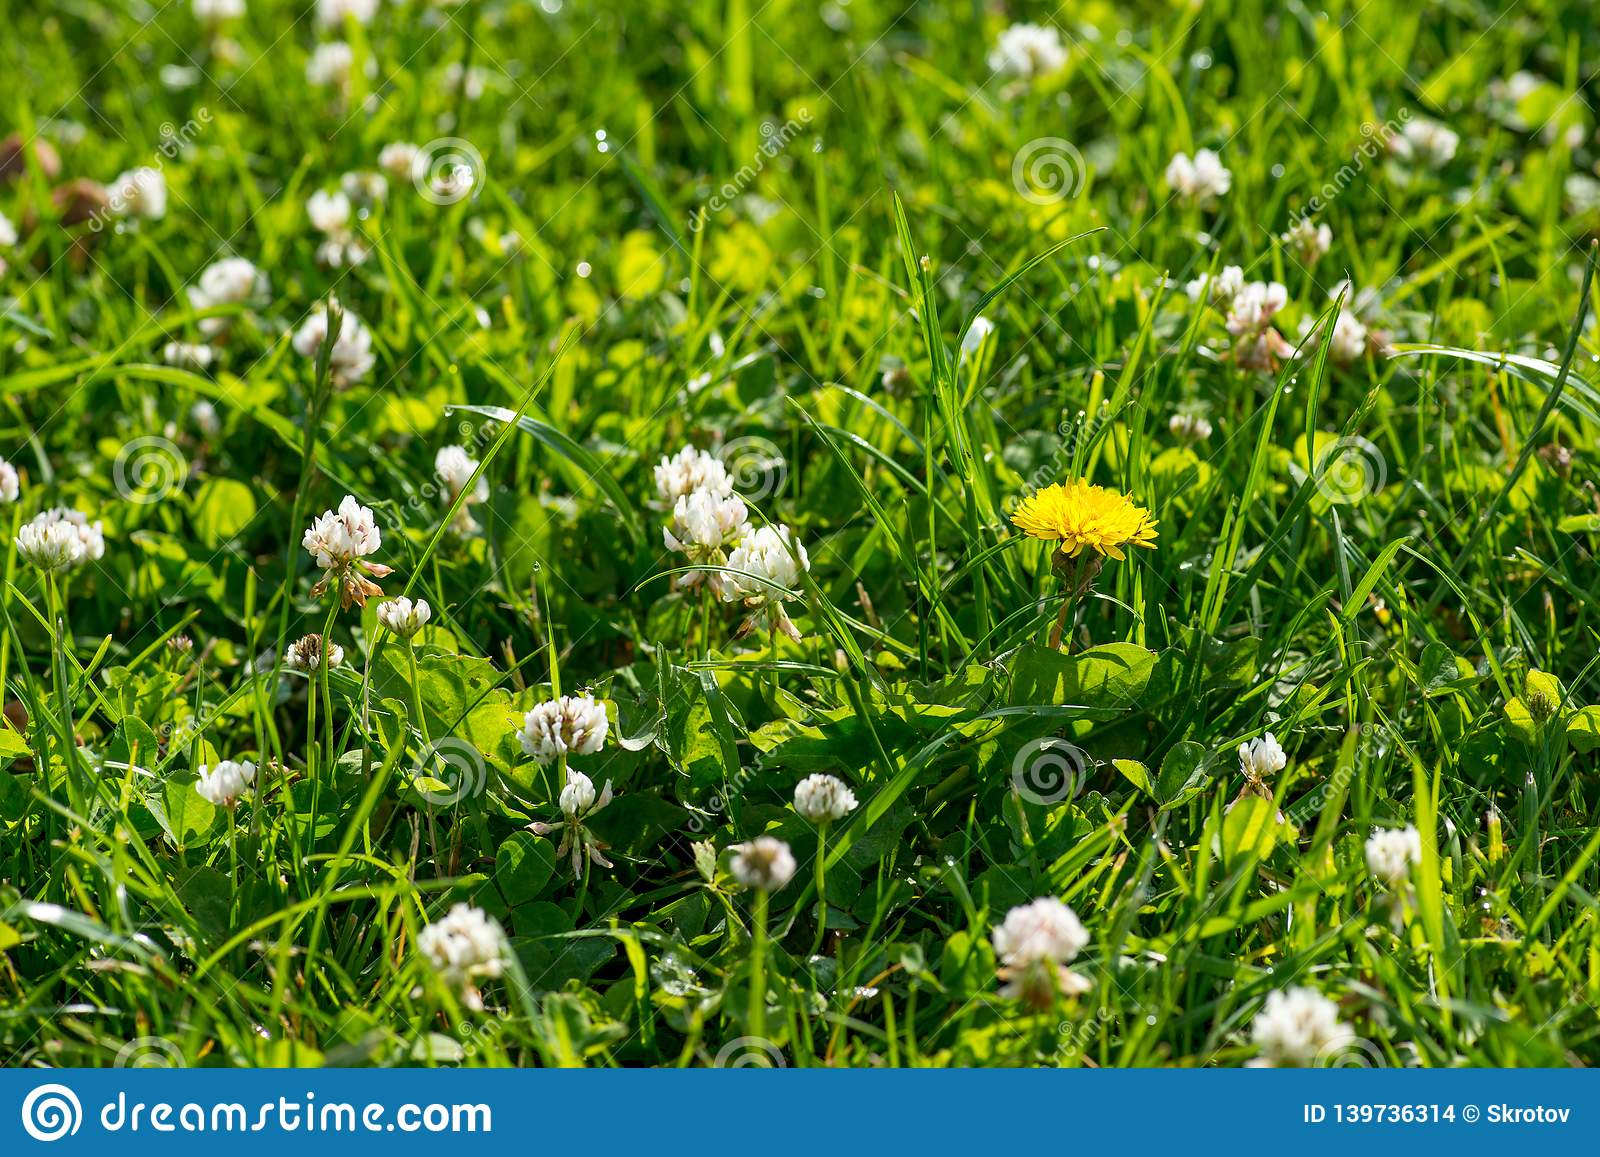 White clover wild meadow flowers in field. Nature vintage summer spring photo background. Selective focus macro shot